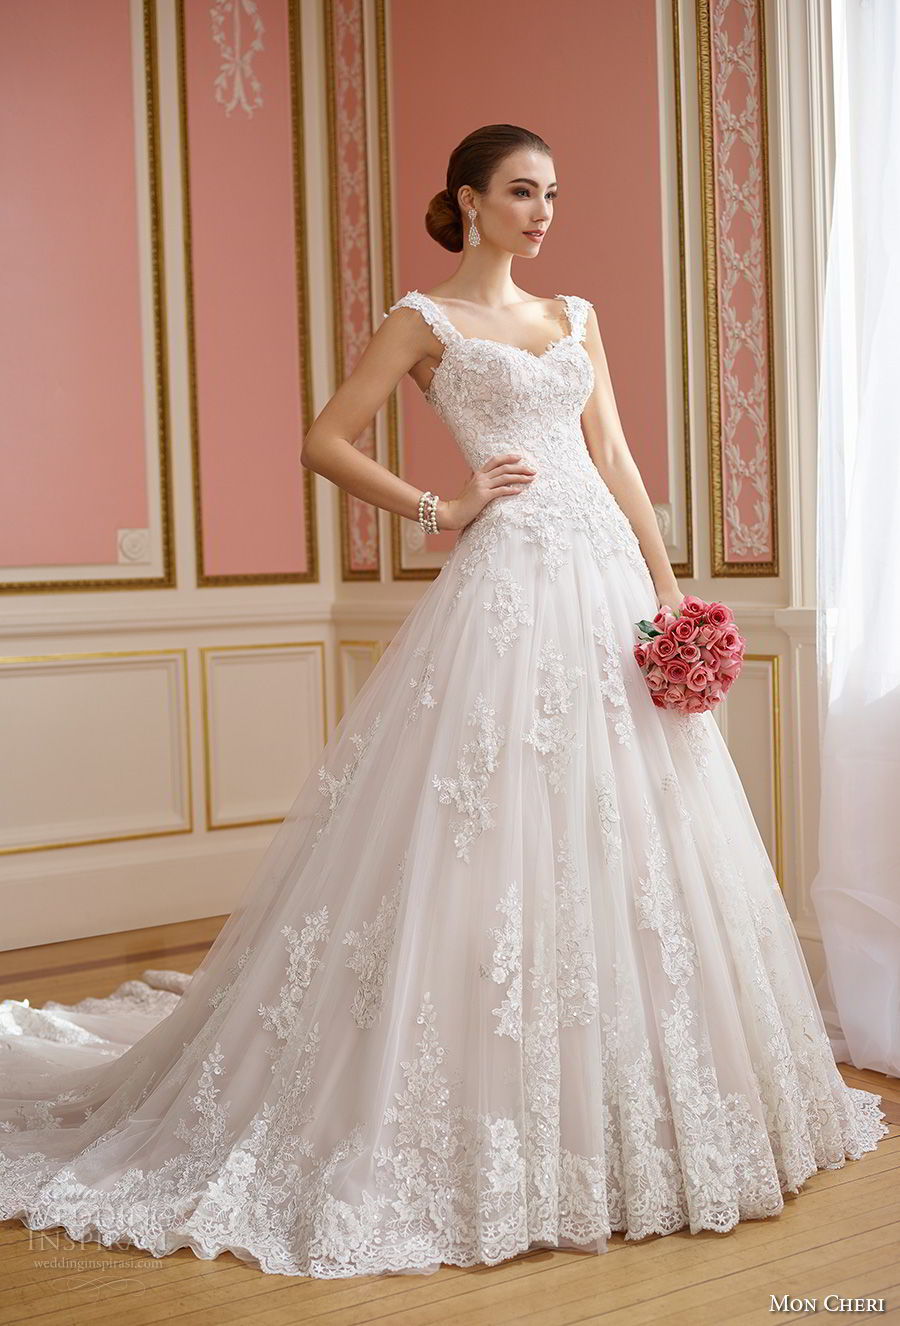 mon cheri fall 2017 bridal sleeveles strap sweetheart neckline heavily embellished bodice romantic princess ball gown wedding dress open back royal train (210) av